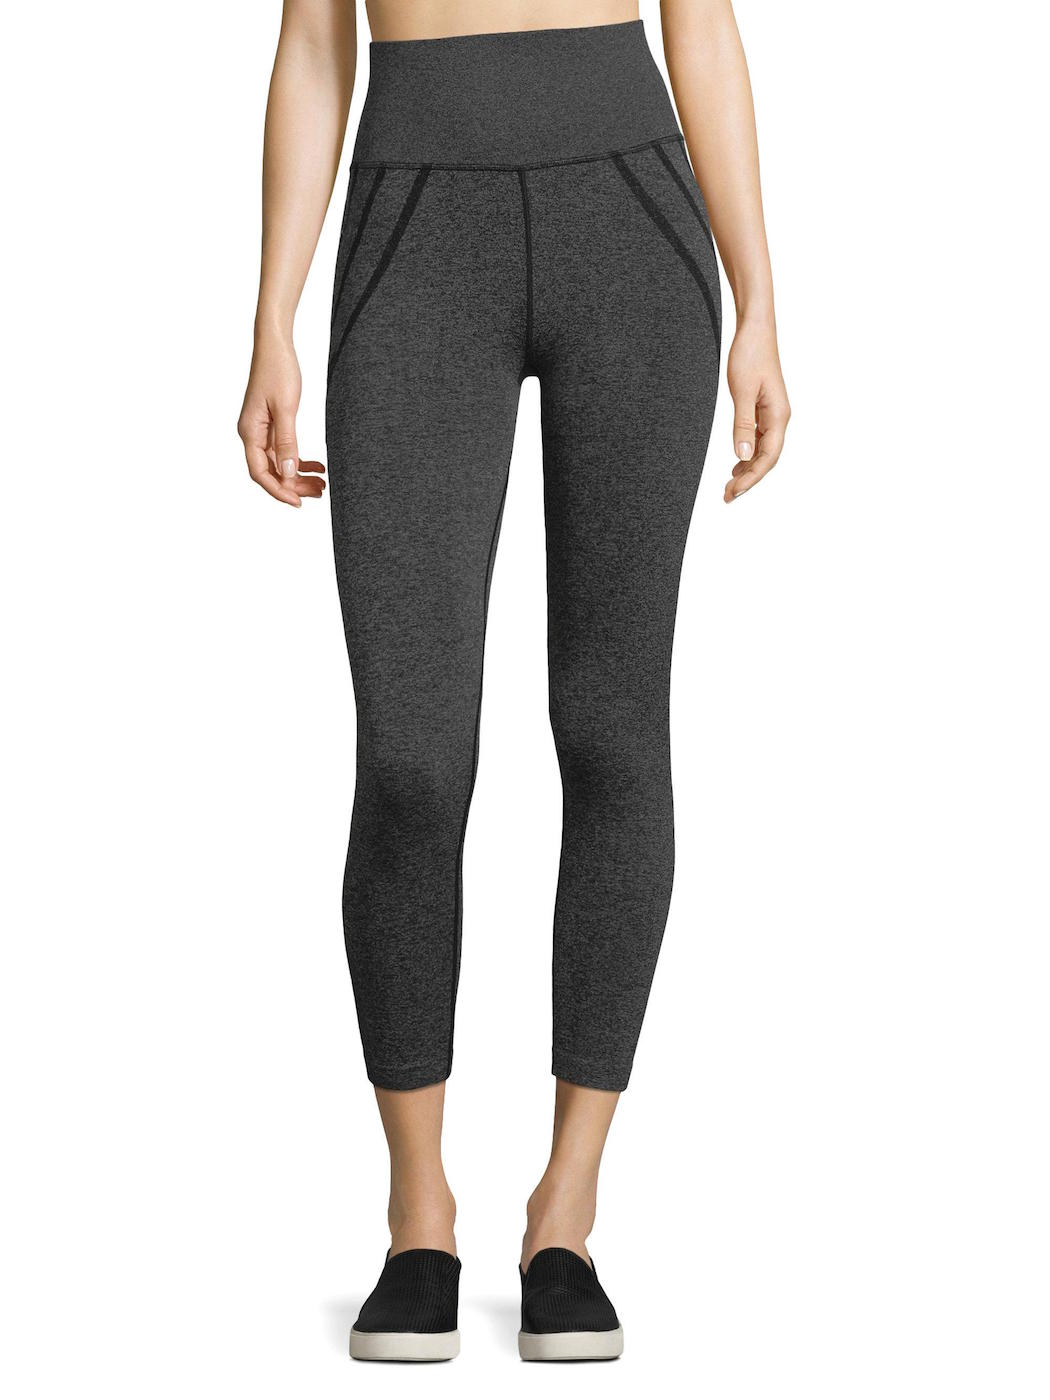 Phat Buddha Christopher Street Heathered Leggings